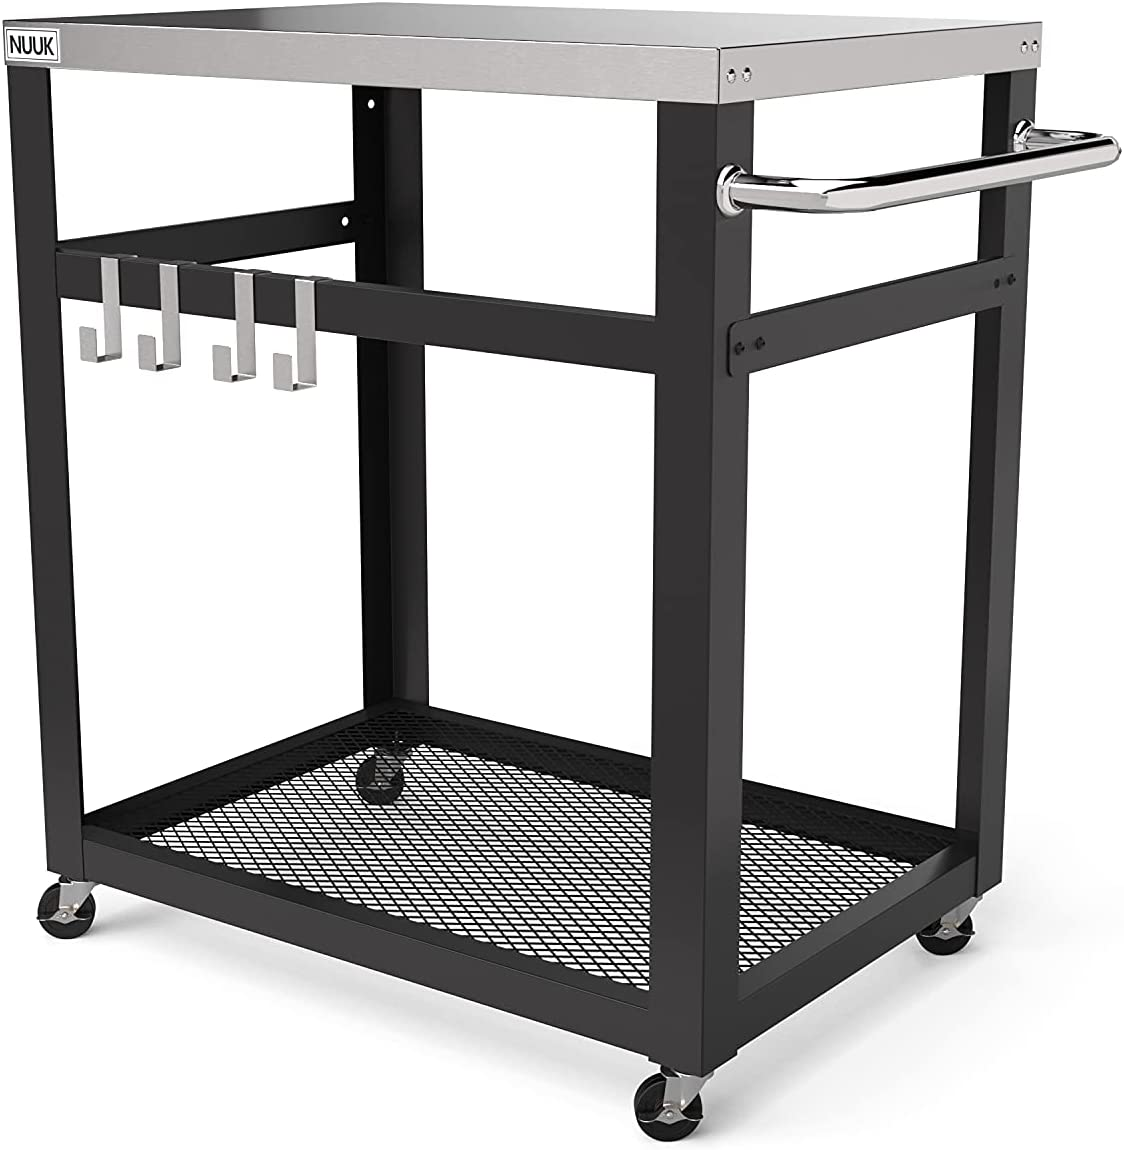 NUUK Double-Shelf Movable Outdoor Worktable, 20'' x 30'' Stainless Steel Commercial Kitchen Food Prep Table, Flattop Dining Cart Table, Outdoor Bar Table